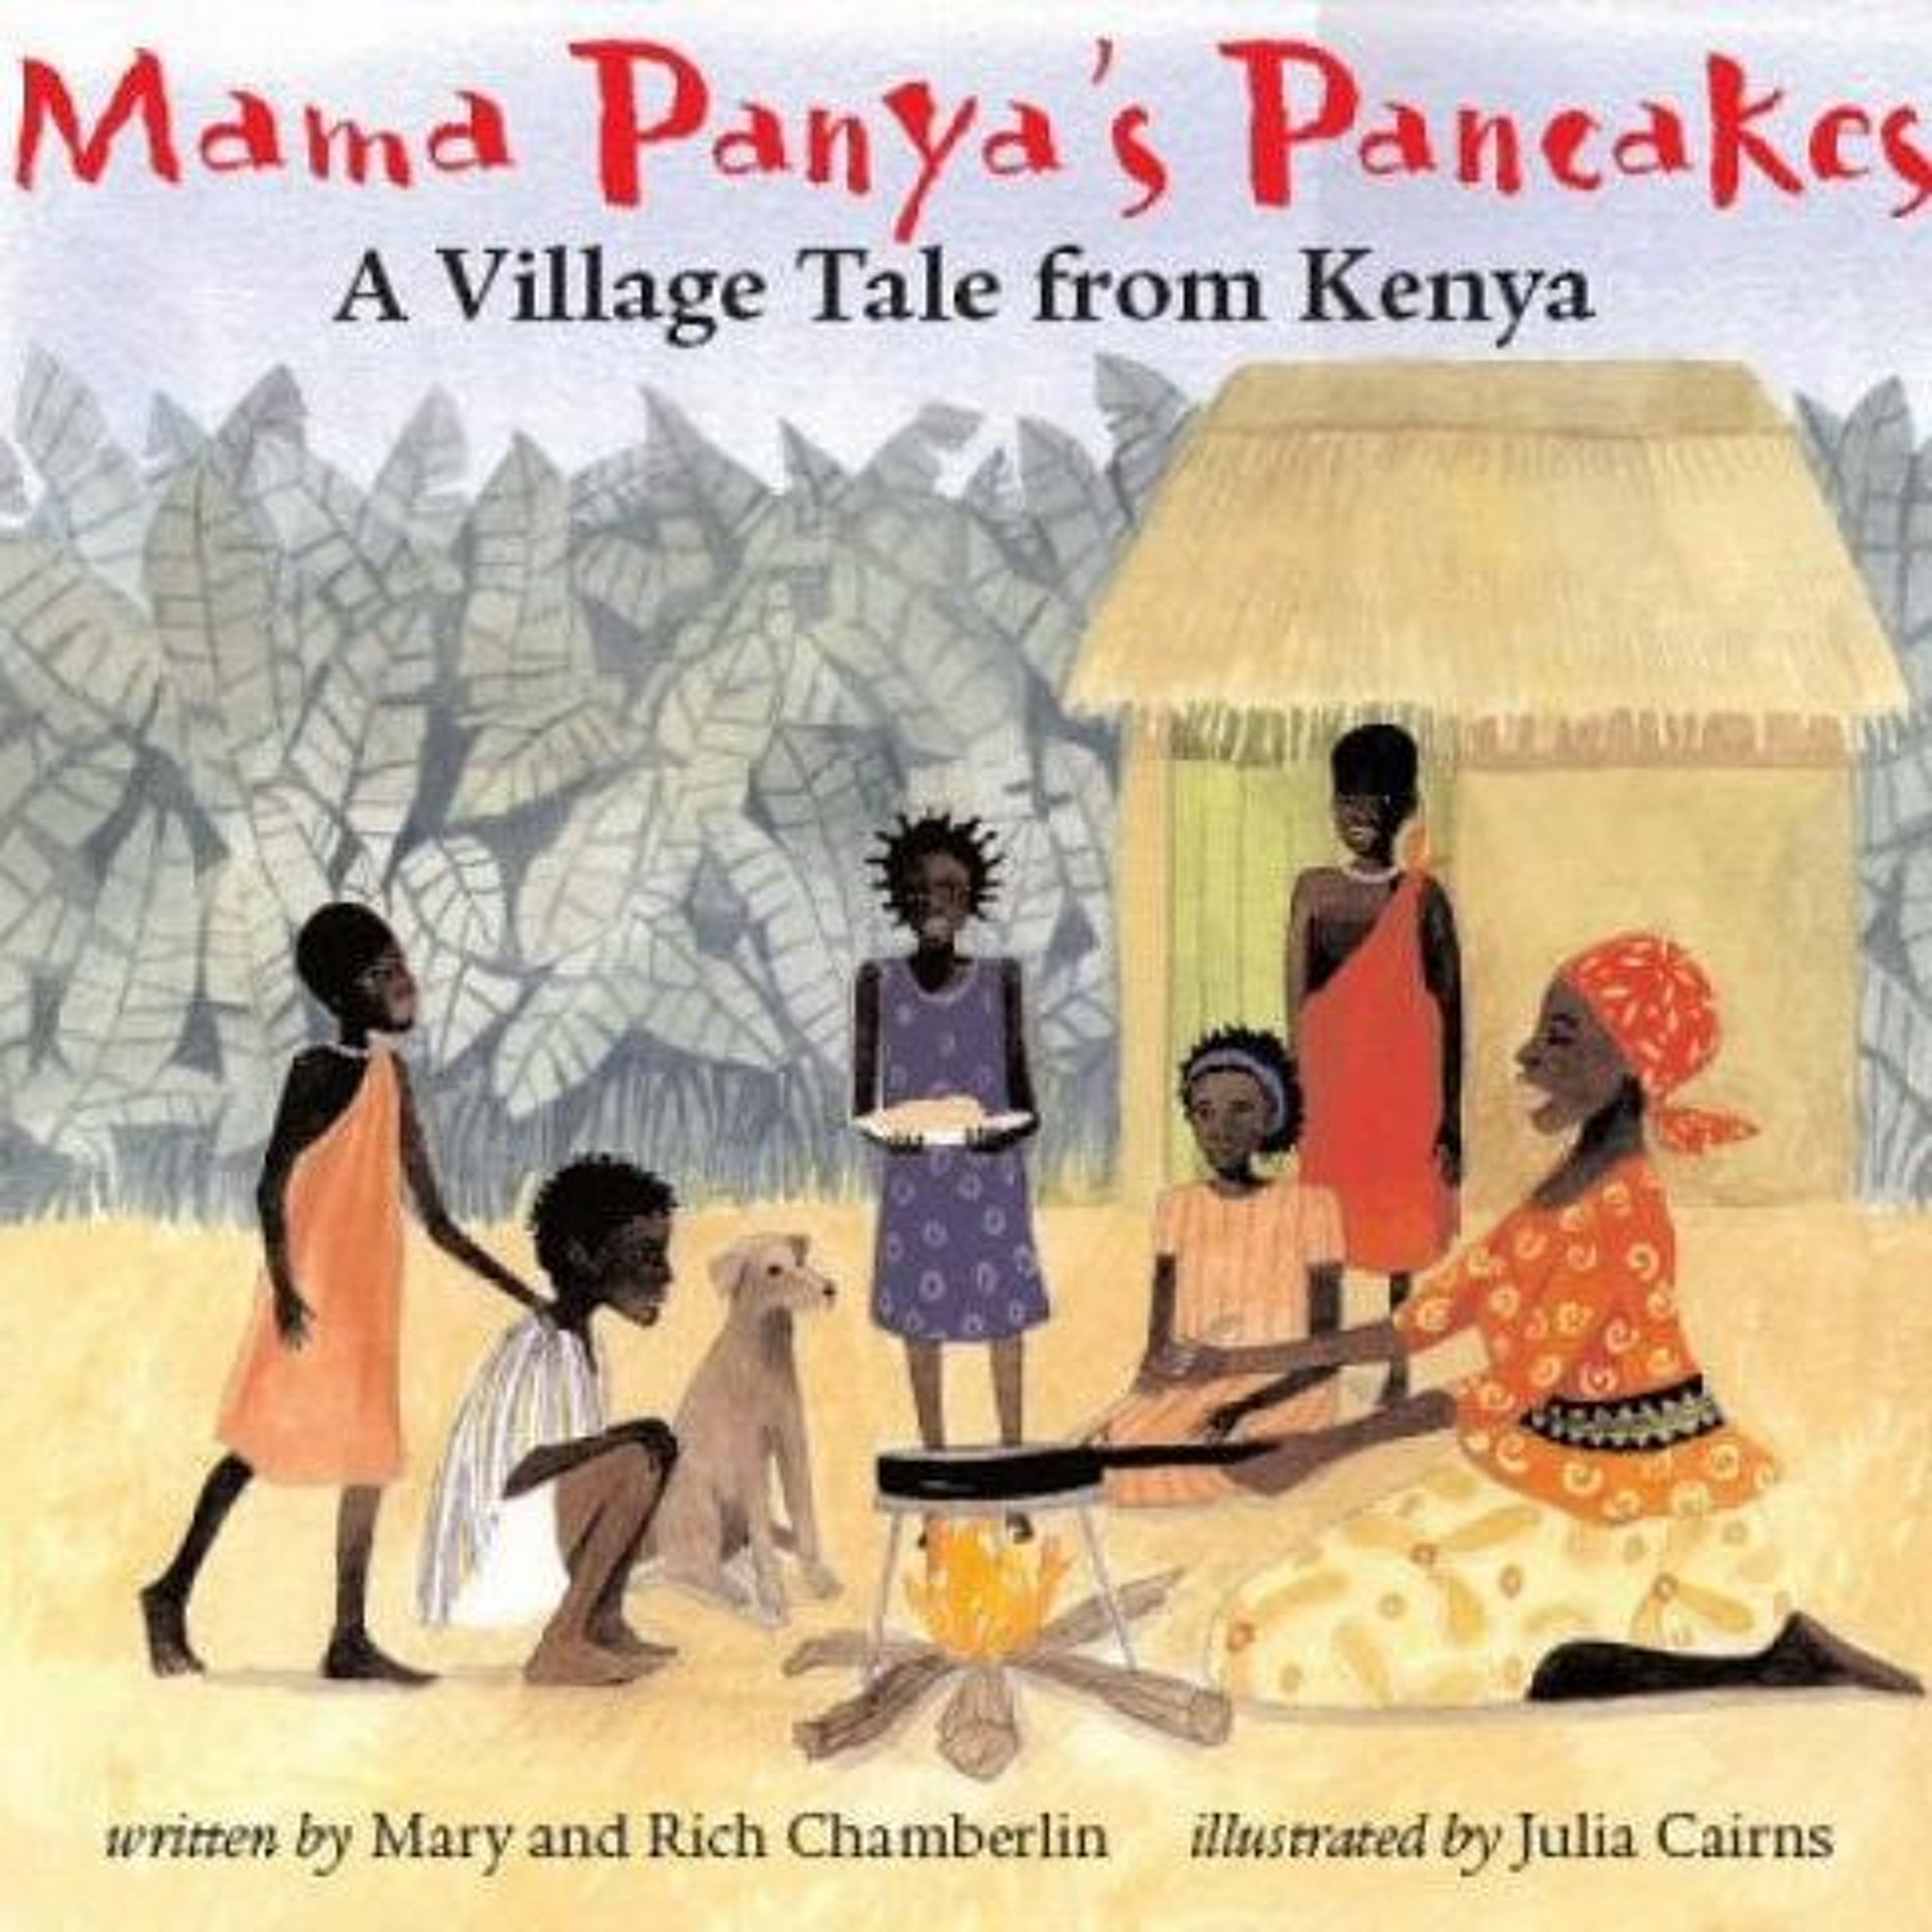 Mama Panya's Pancakes by Mary & Rich Chamberlin